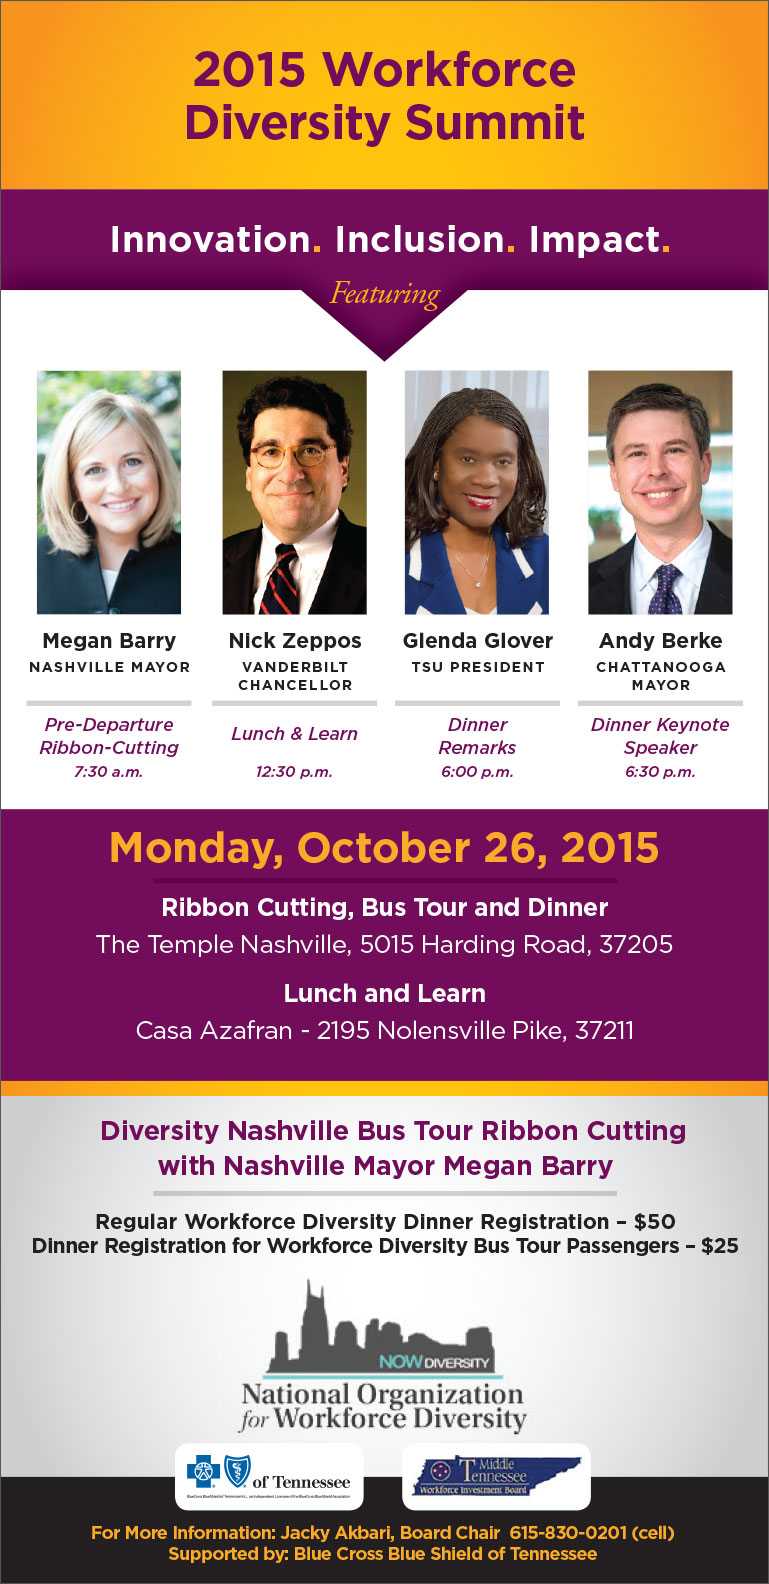 workforceDiversitySummit_invite